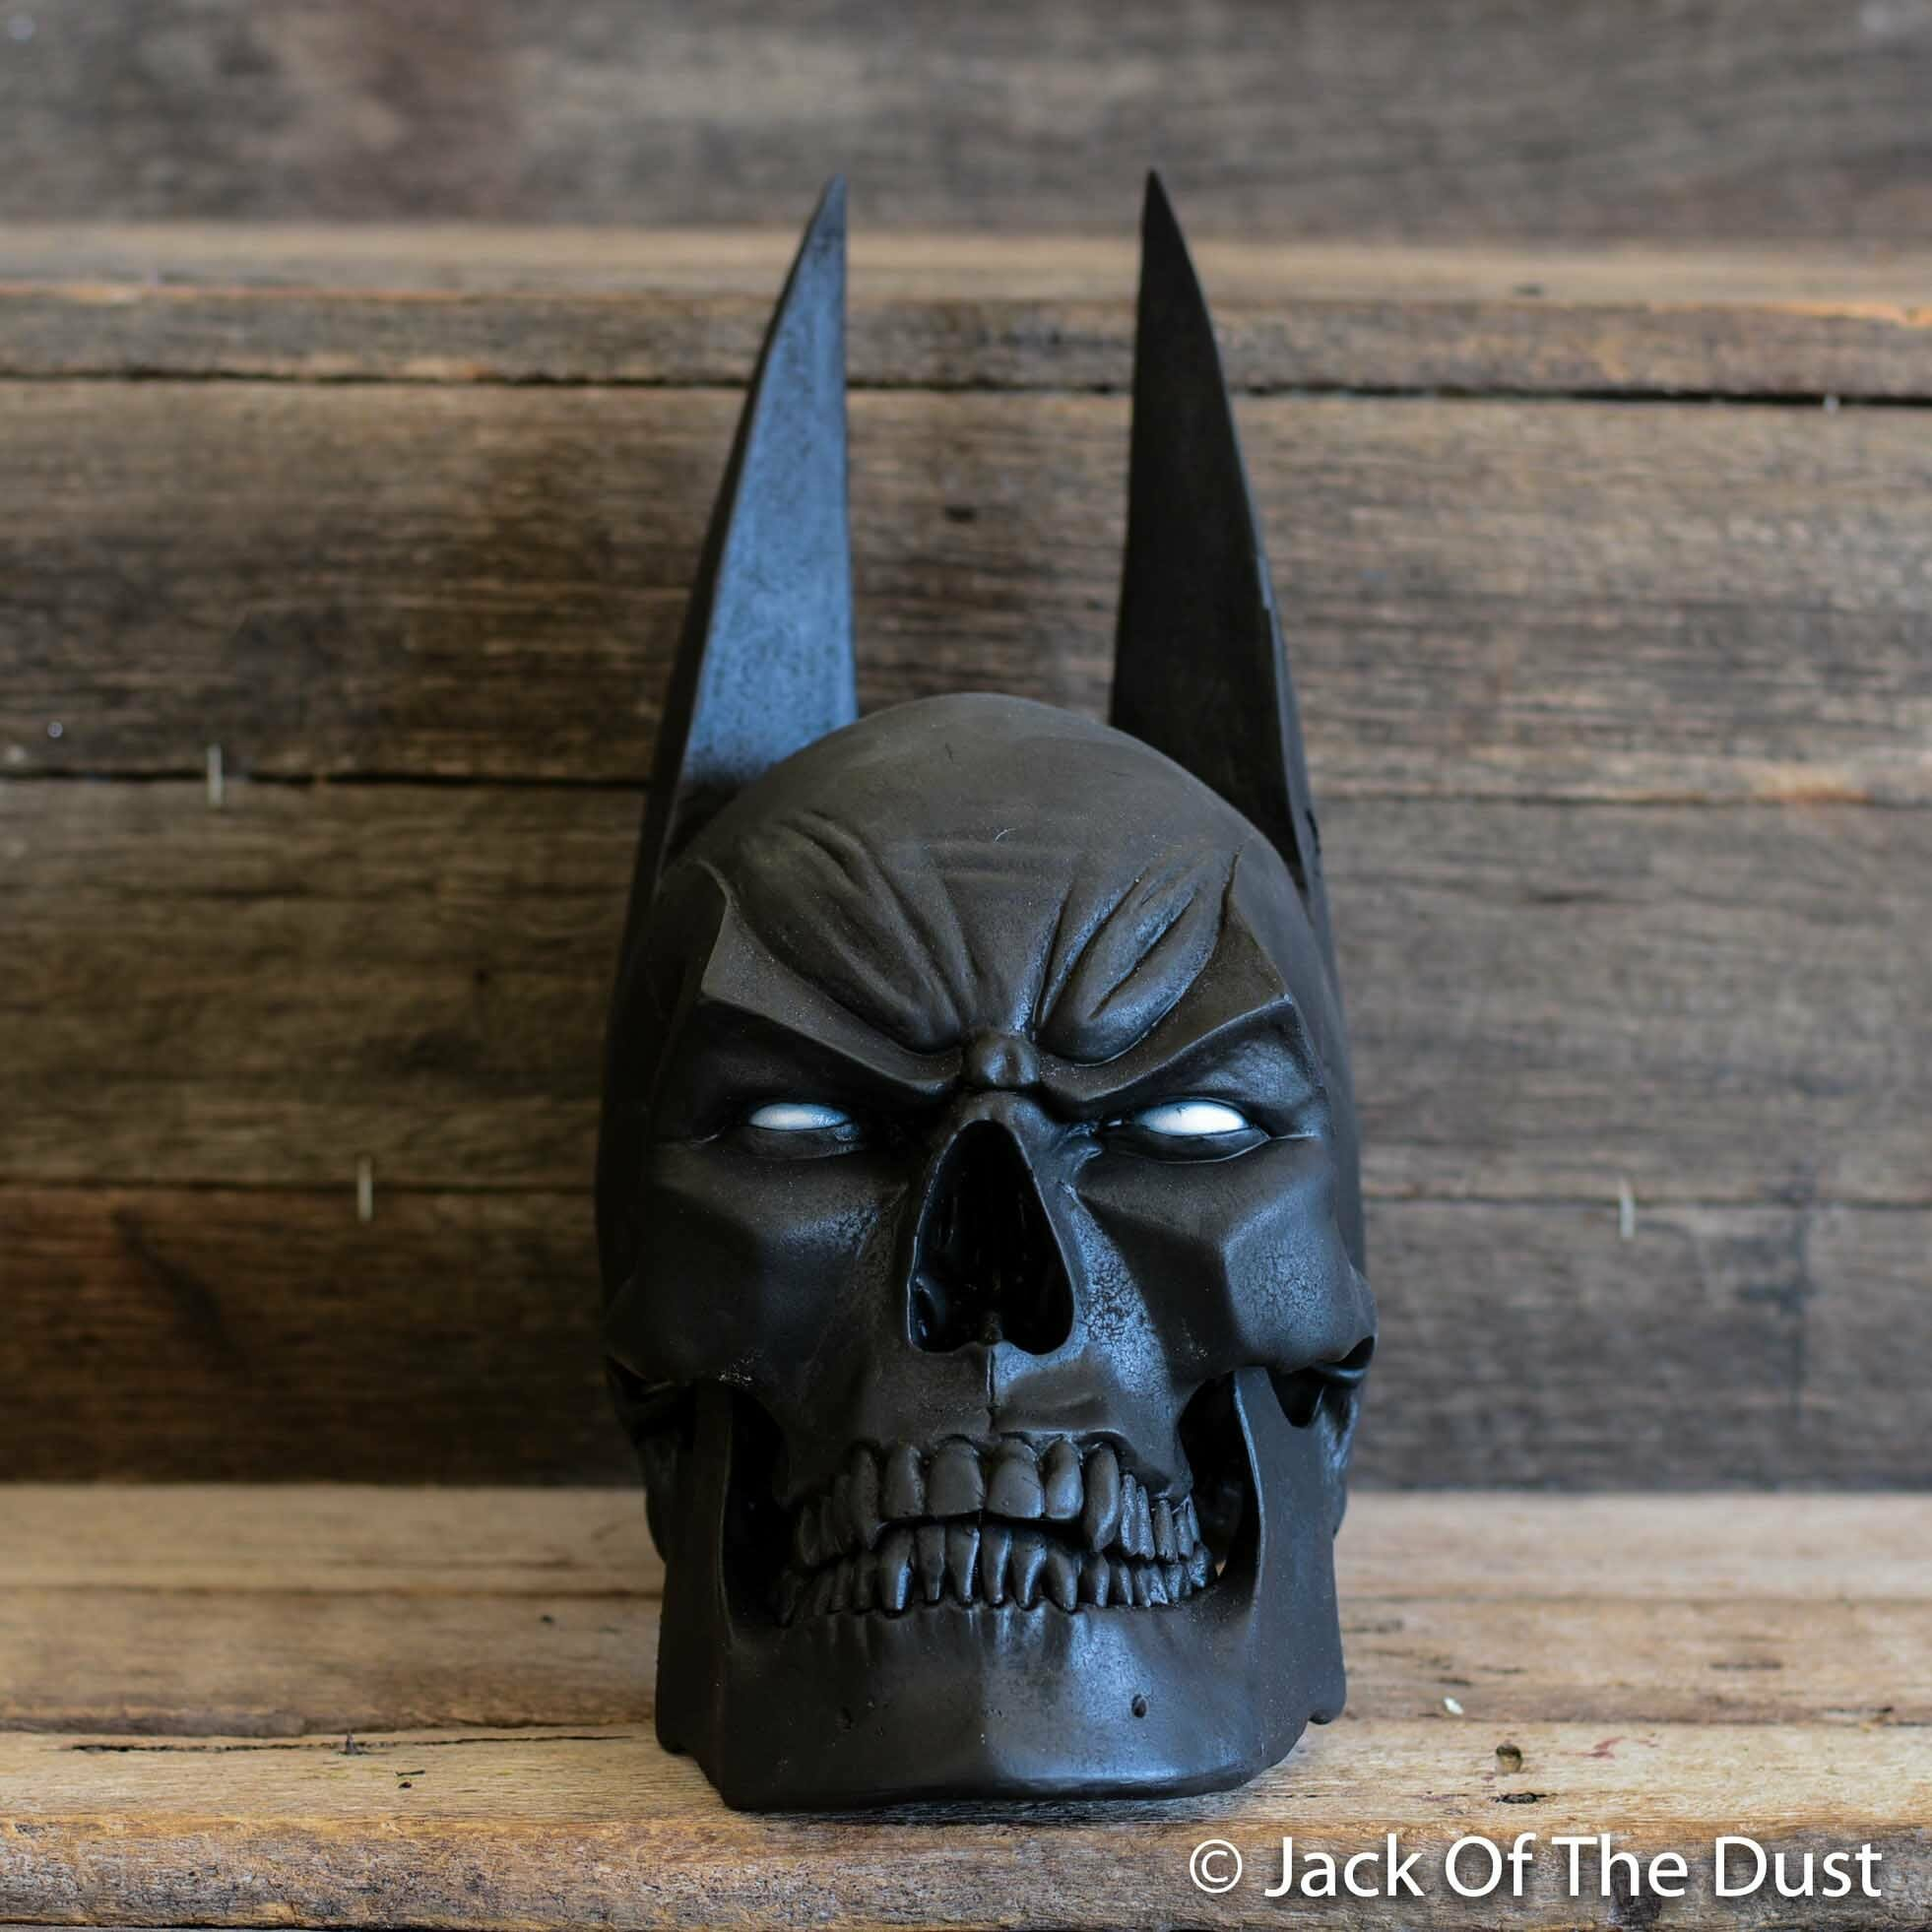 The Batskull